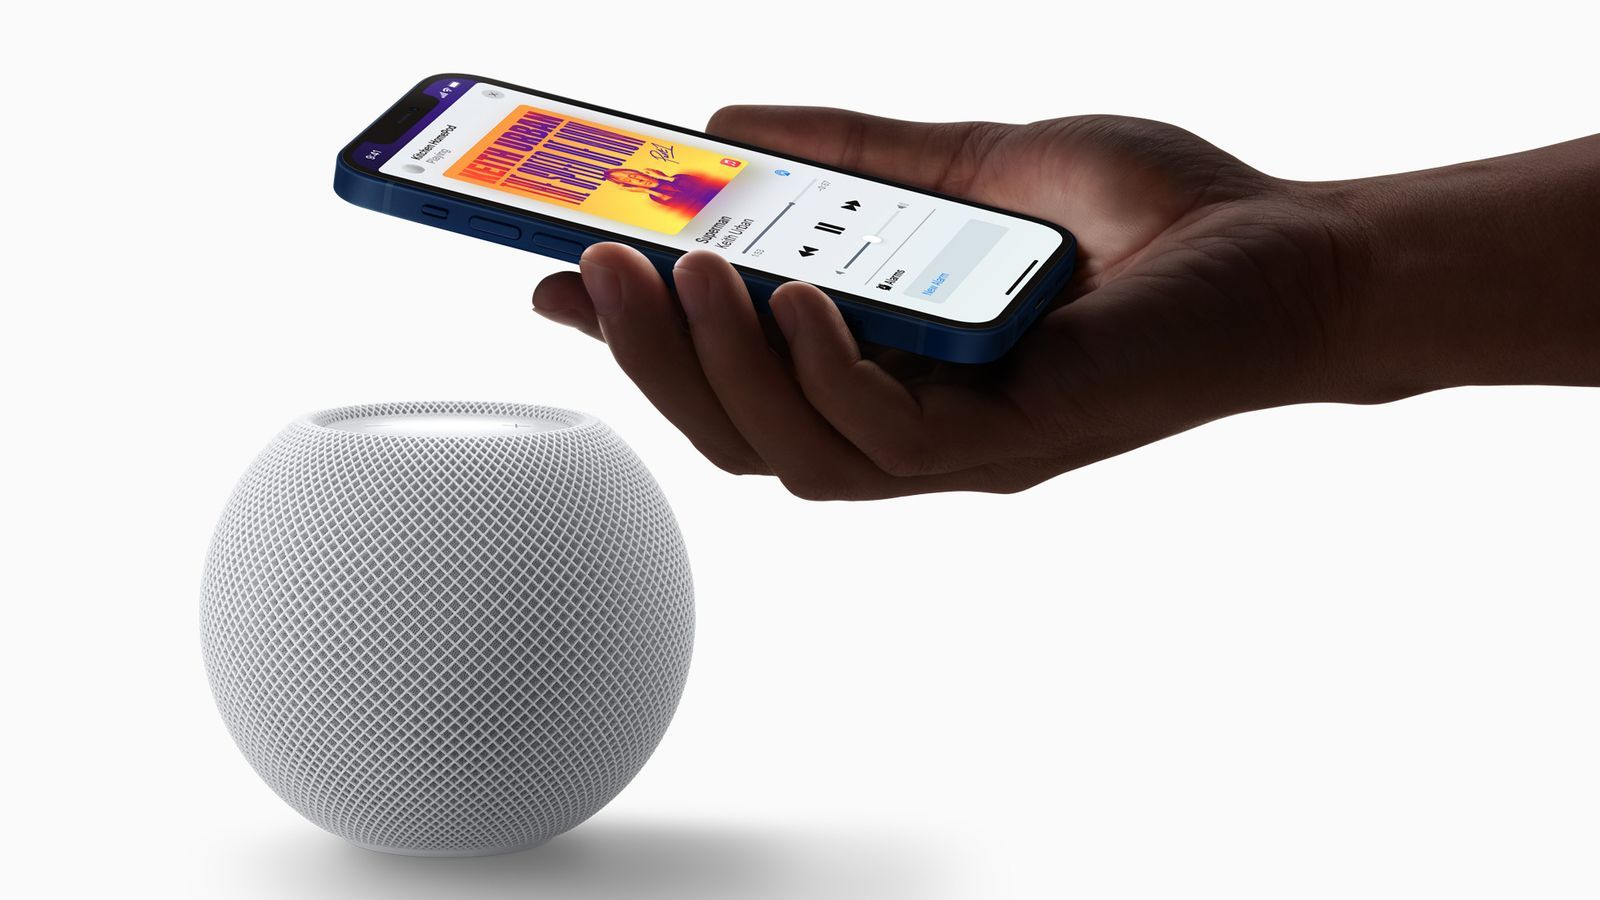 El Homepod d'Apple